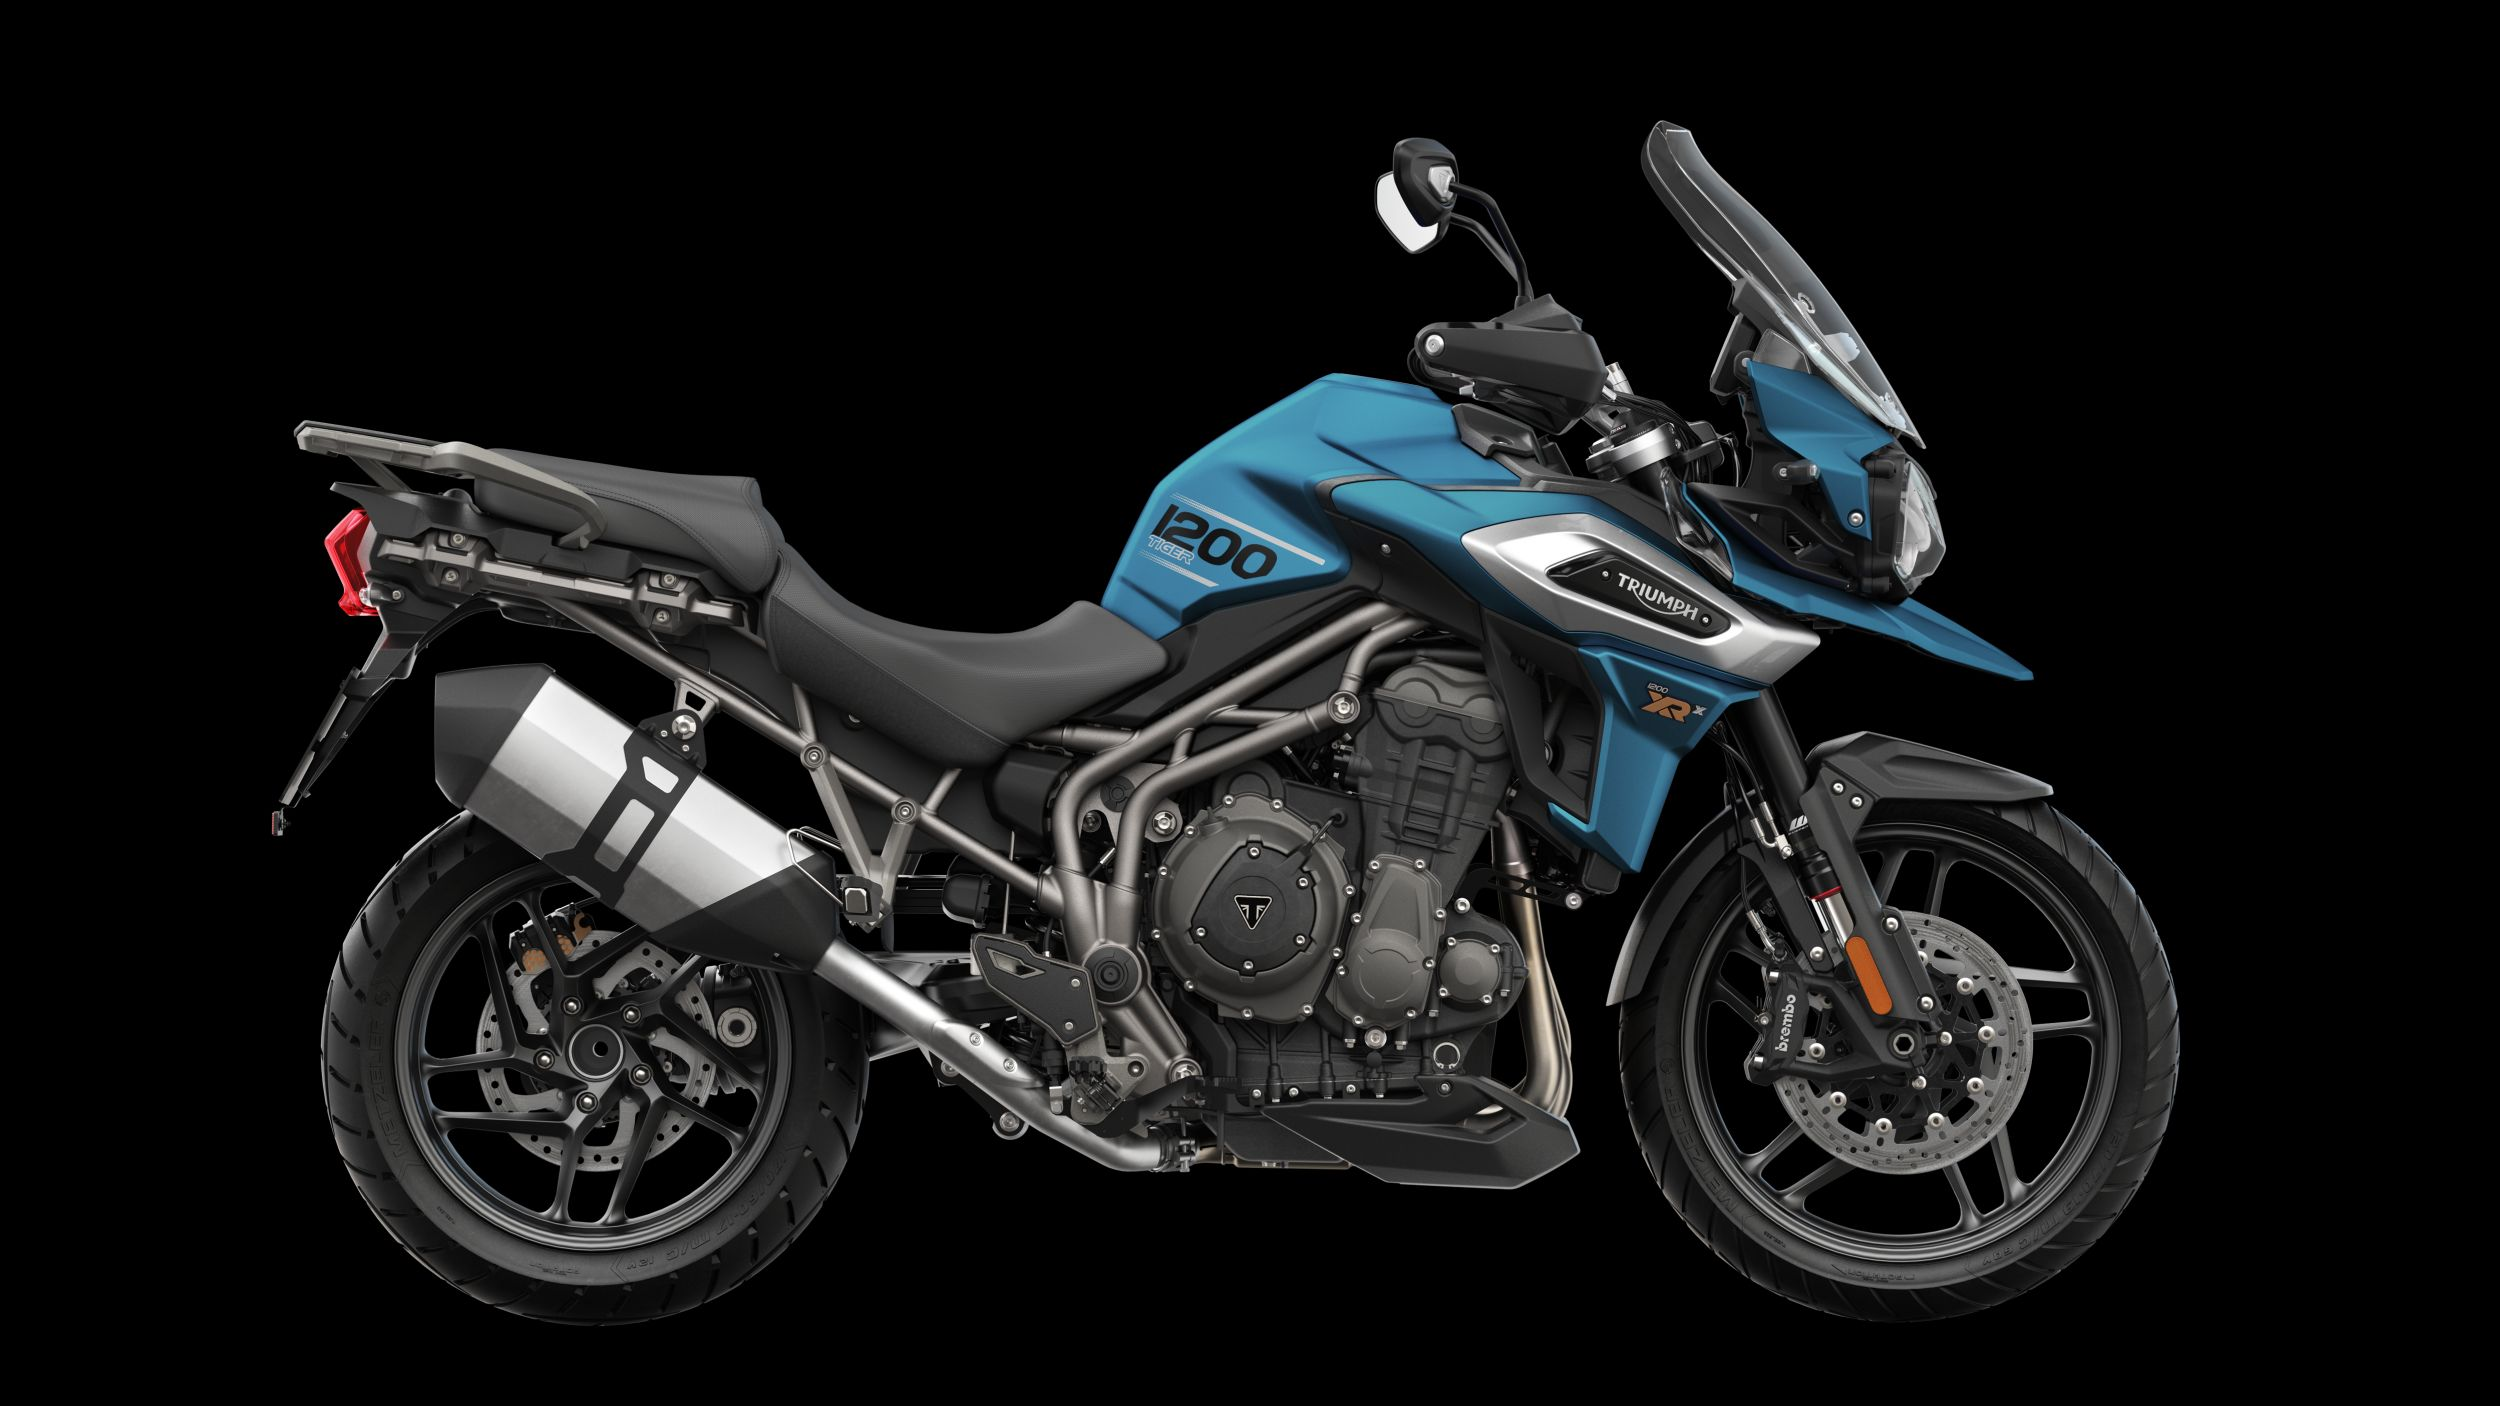 triumph tiger 1200 xrx all technical data of the model tiger 1200 xrx from triumph. Black Bedroom Furniture Sets. Home Design Ideas